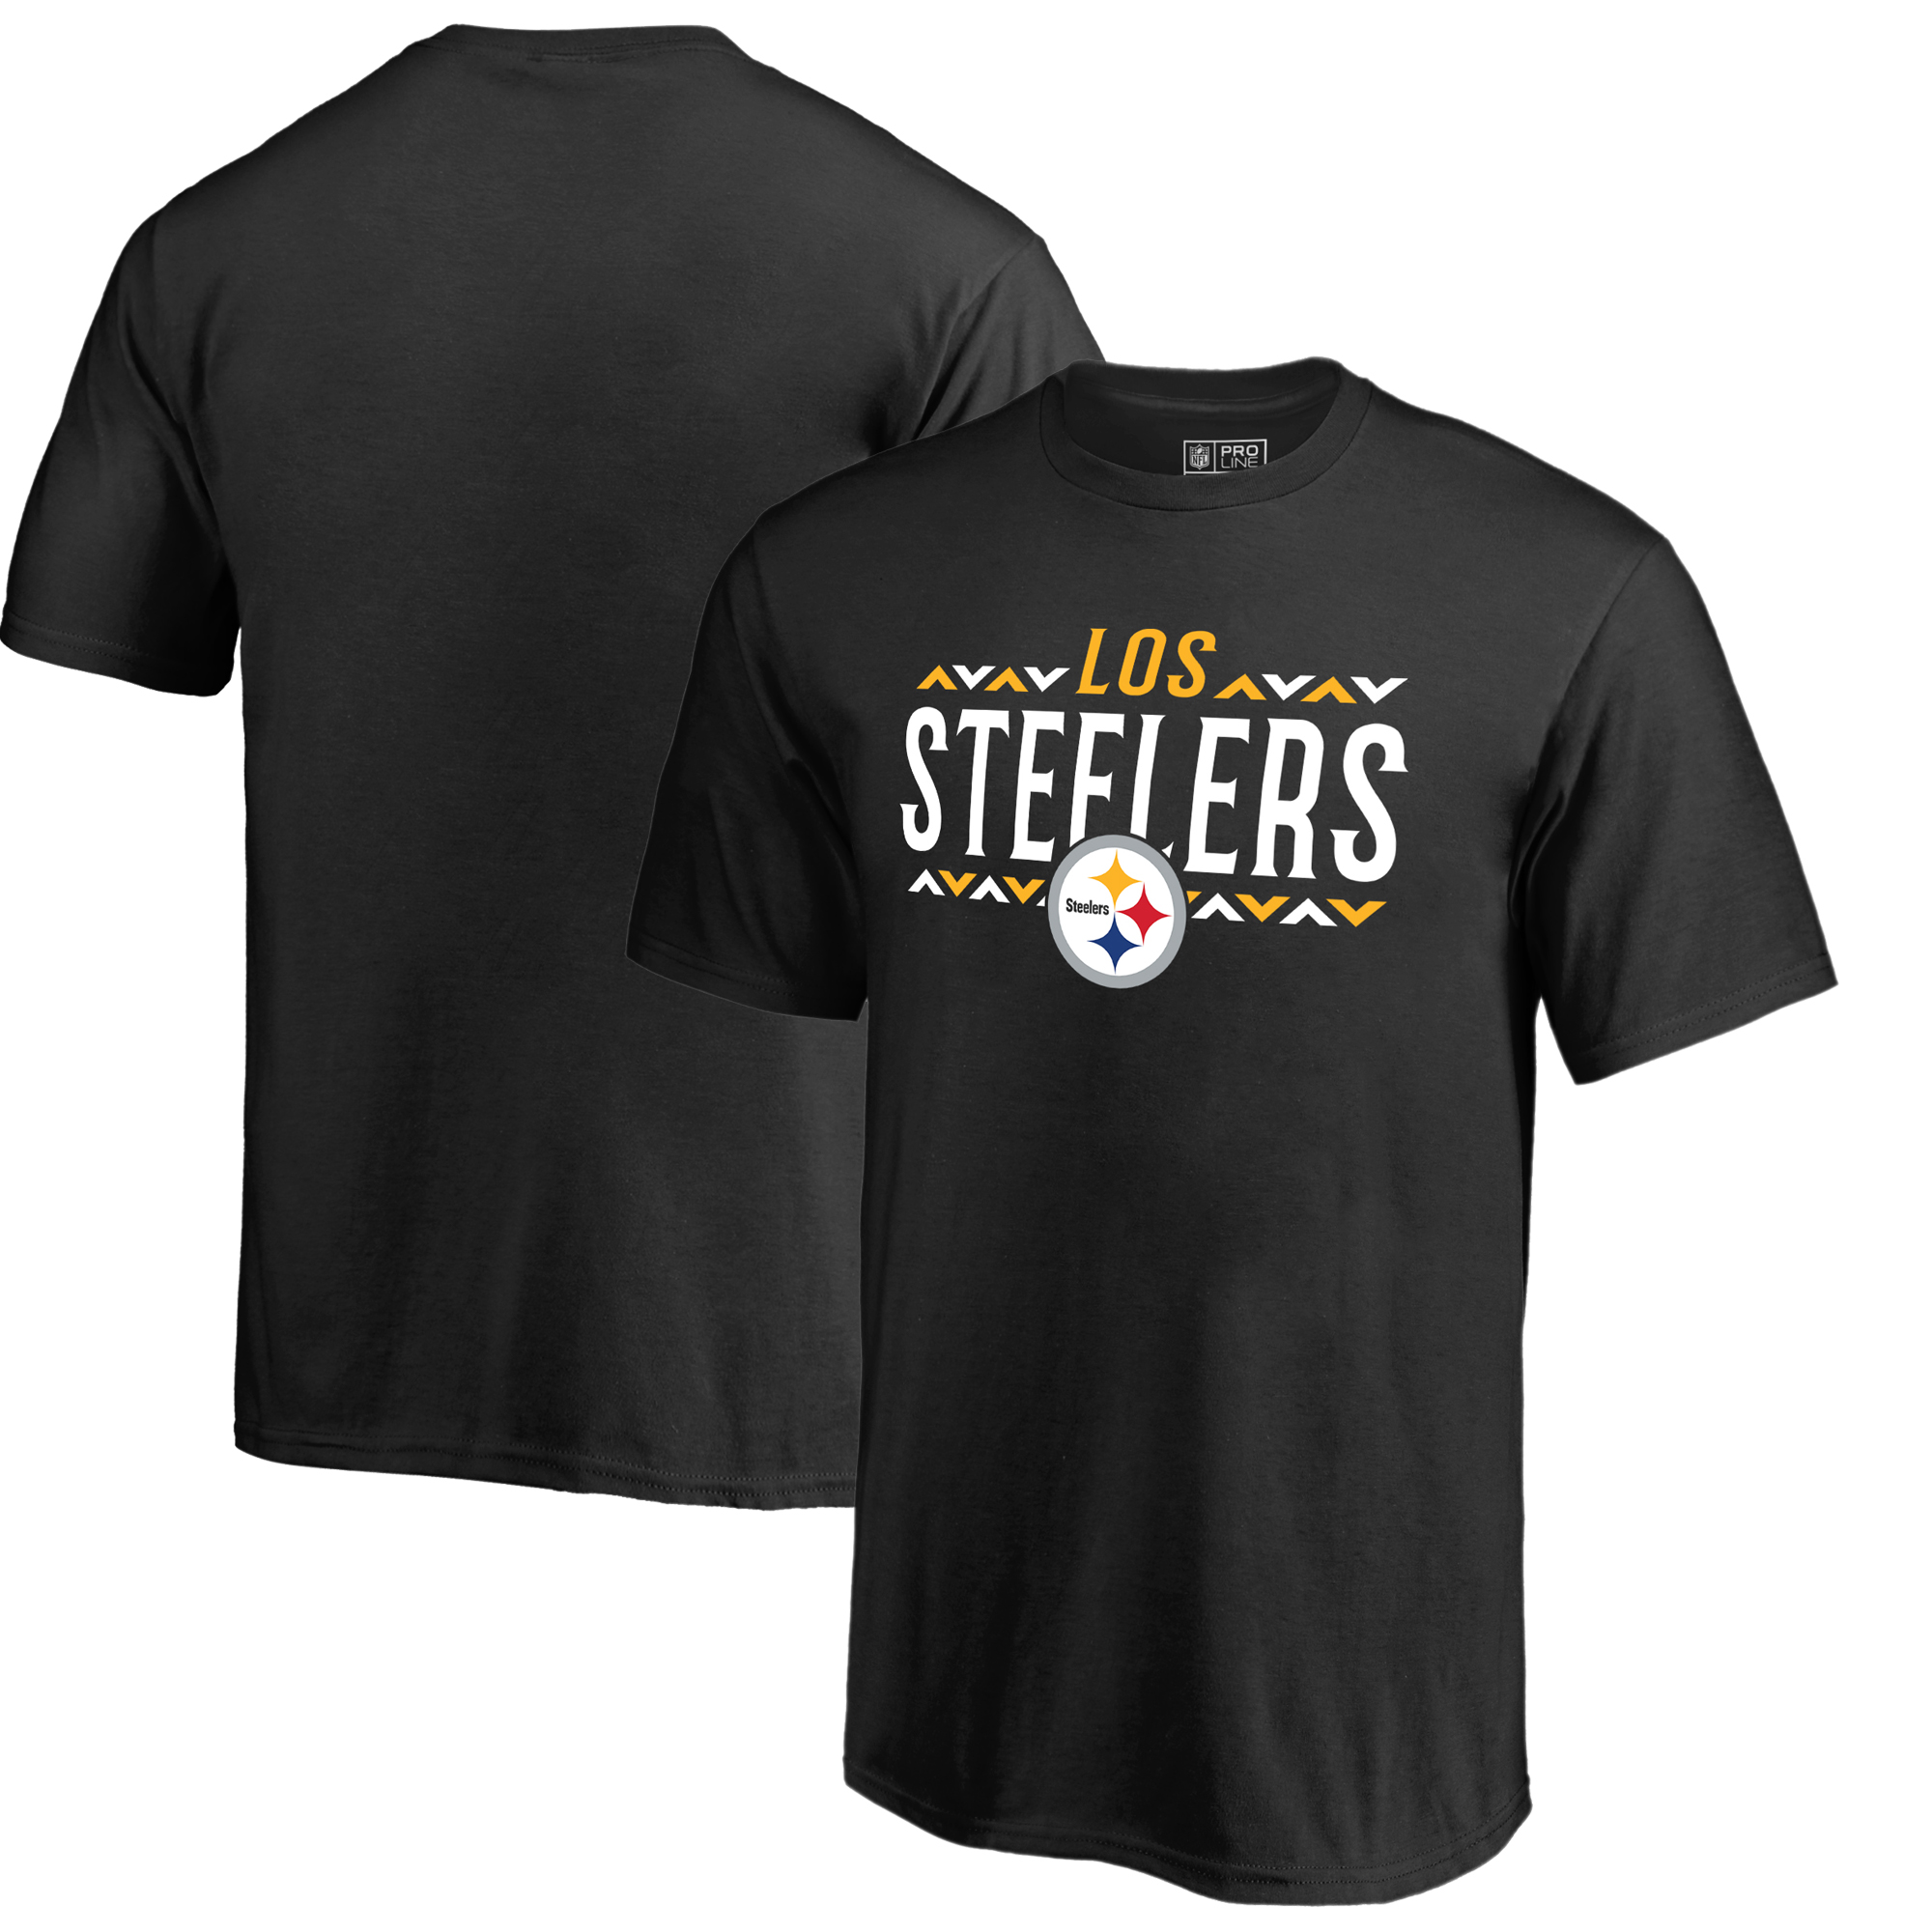 Pittsburgh Steelers NFL Pro Line by Fanatics Branded Youth Arriba T-Shirt - Black